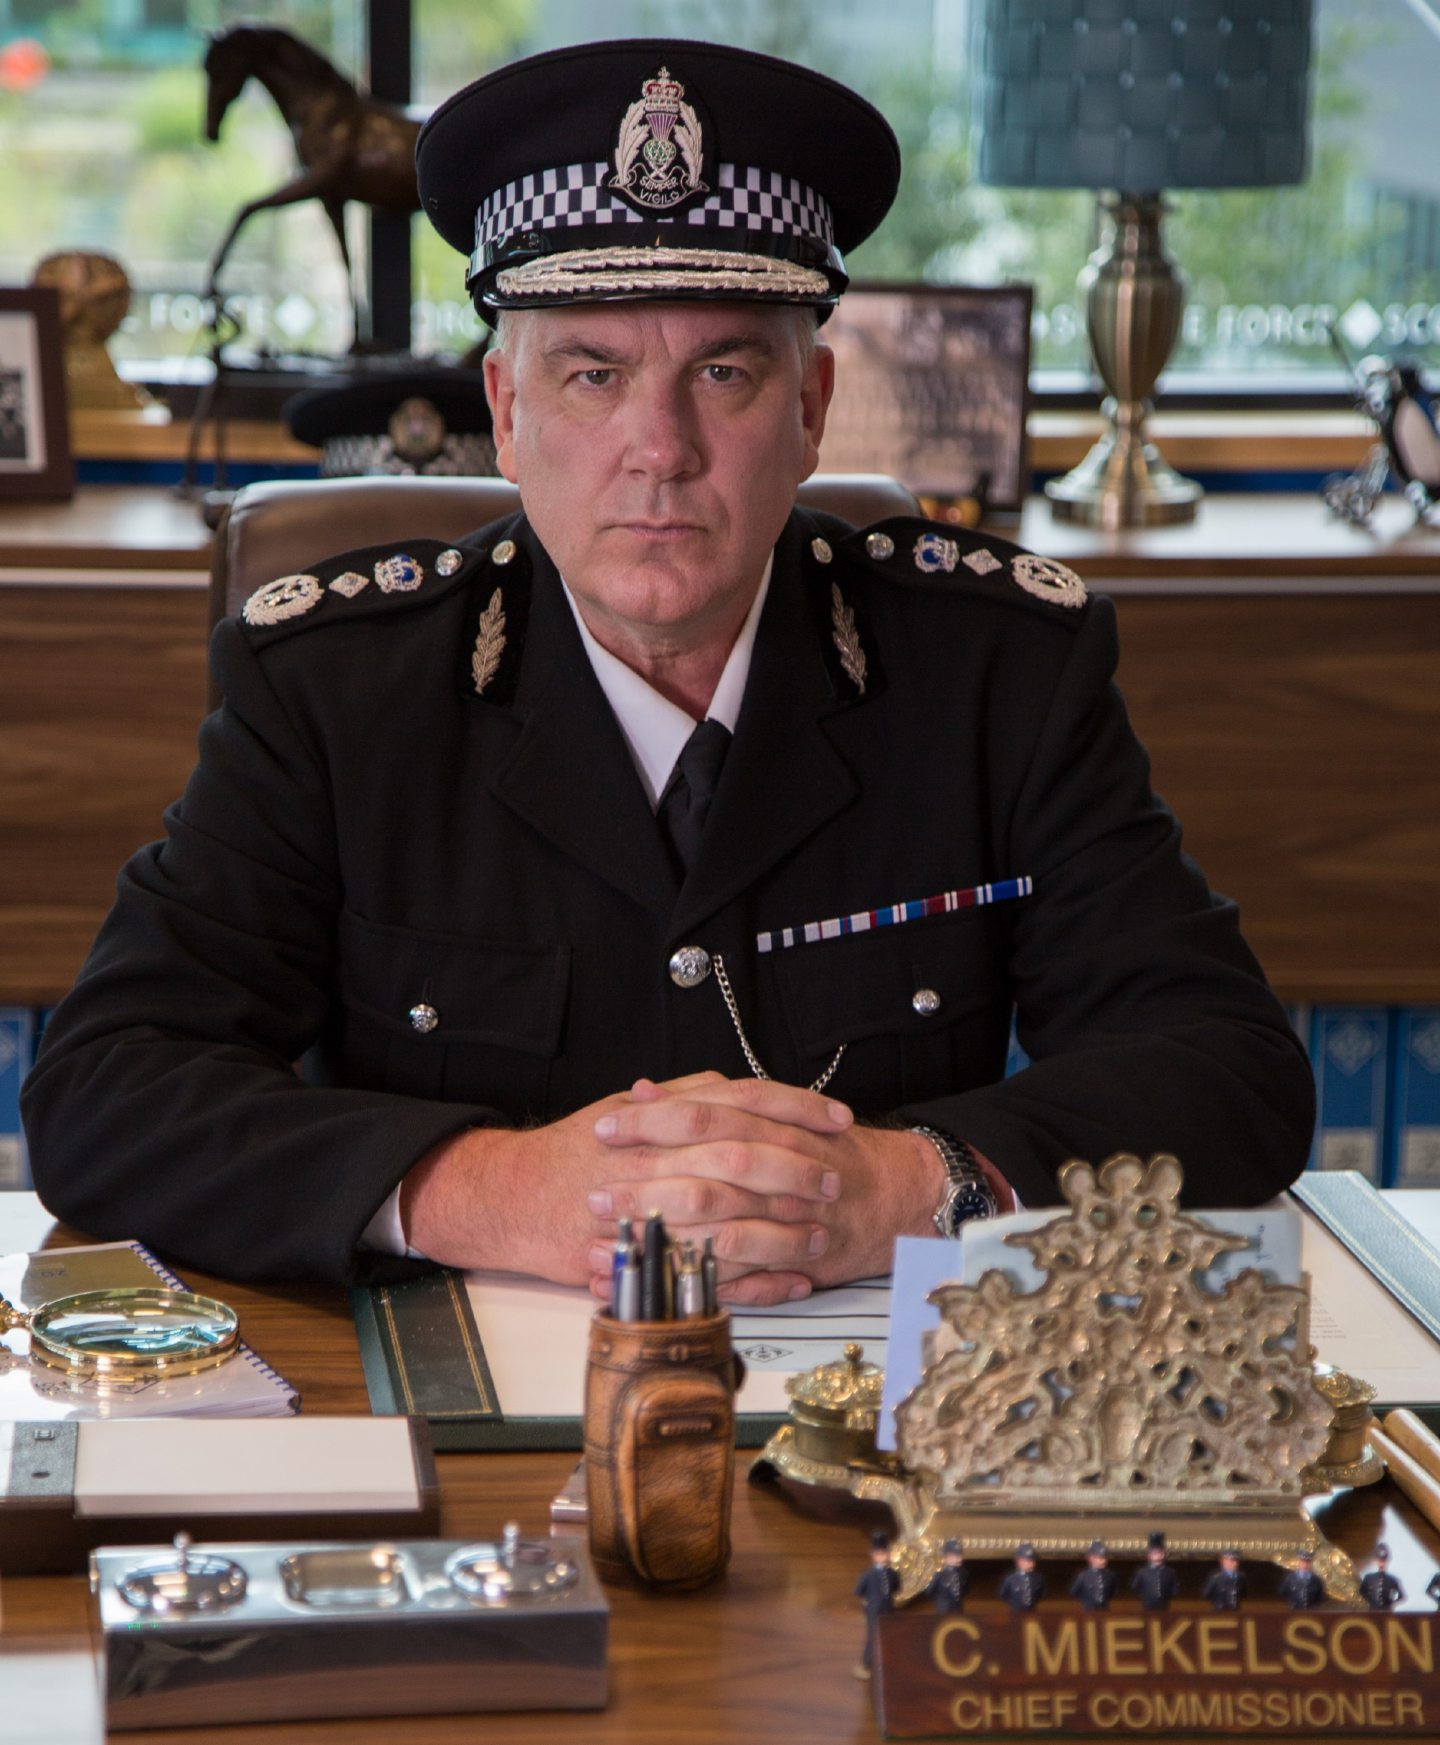 Jack Docherty as Scot Squad chief Cameron Miekelson